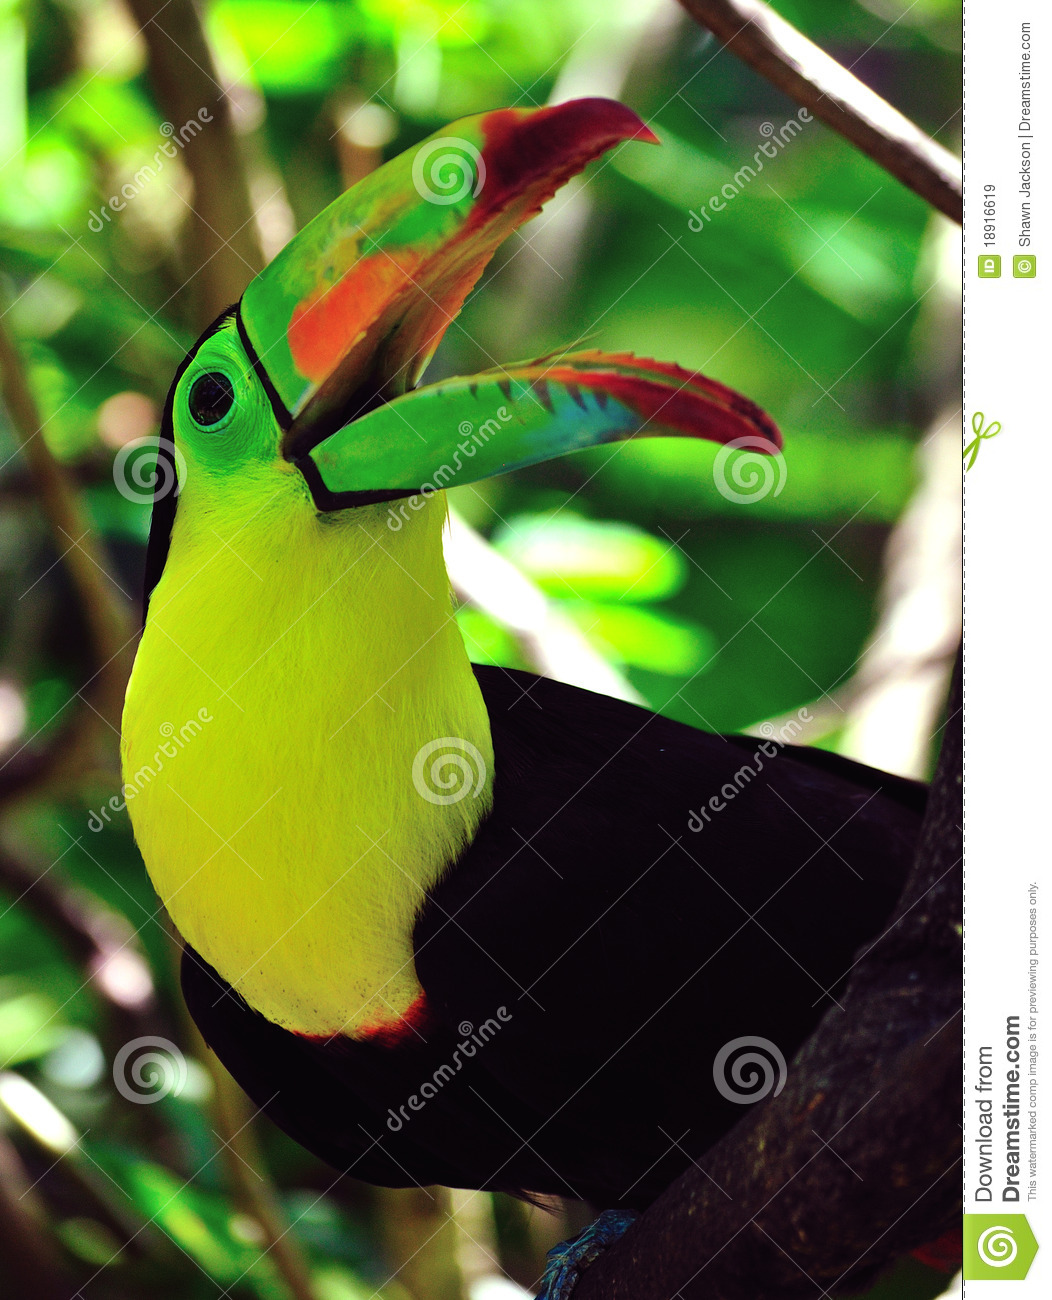 Toucan with beak open